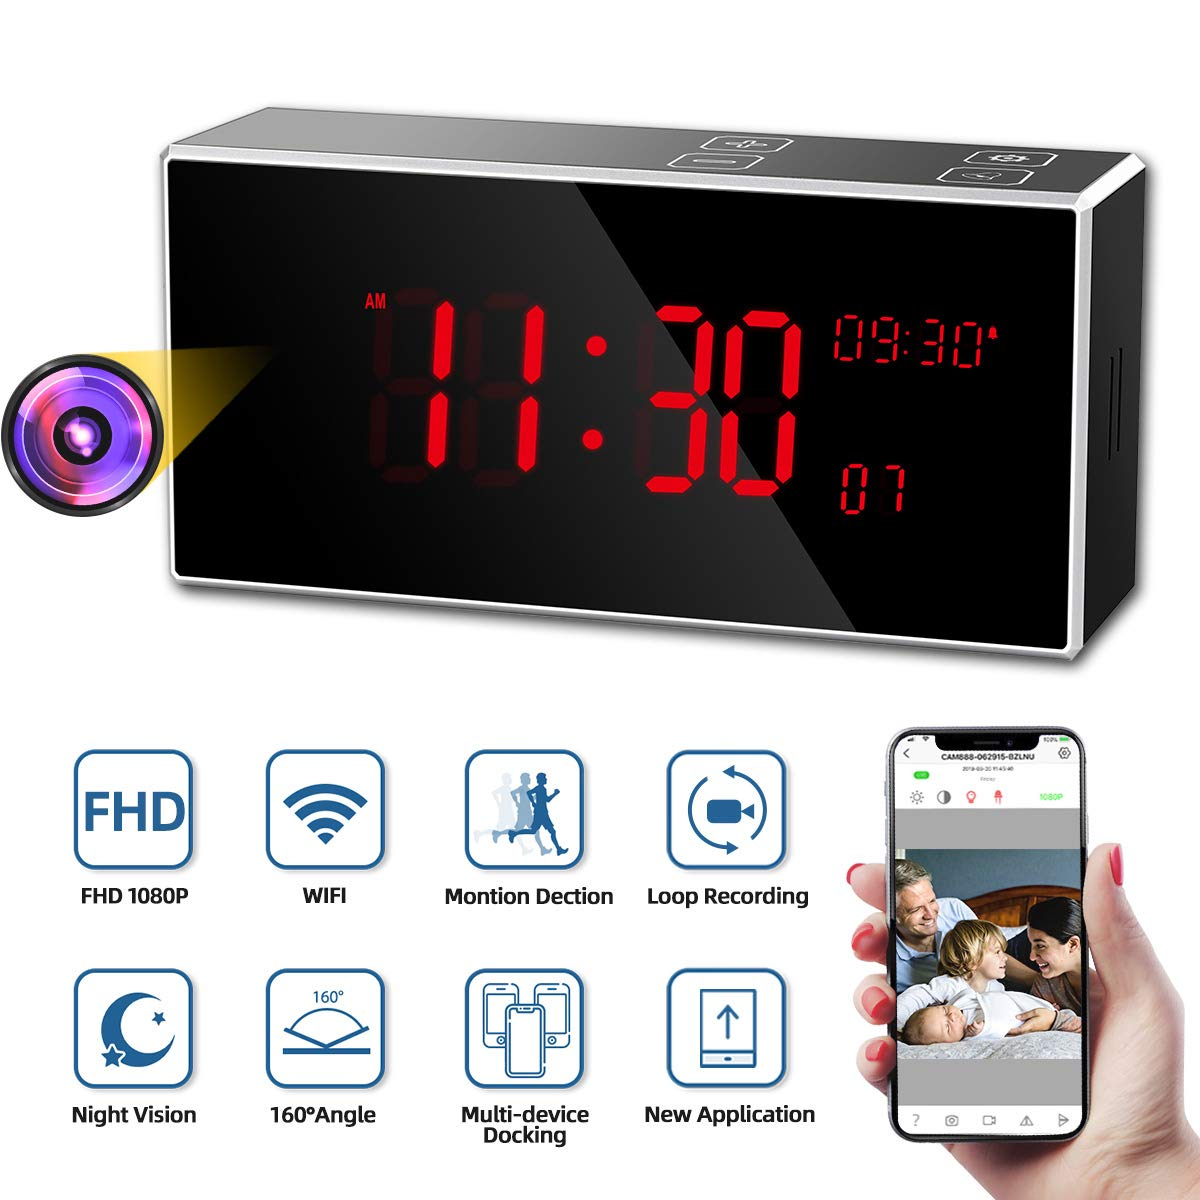 Hidden Camera, Monja PRO Spy Camera Clock, Real 1080P WiFi Cameras for Home, 160°Angle Wireless Nanny Cam, Superior 33FT IR Night Vision, Monitoring Detection, Loop Recording for Indoor Home Security